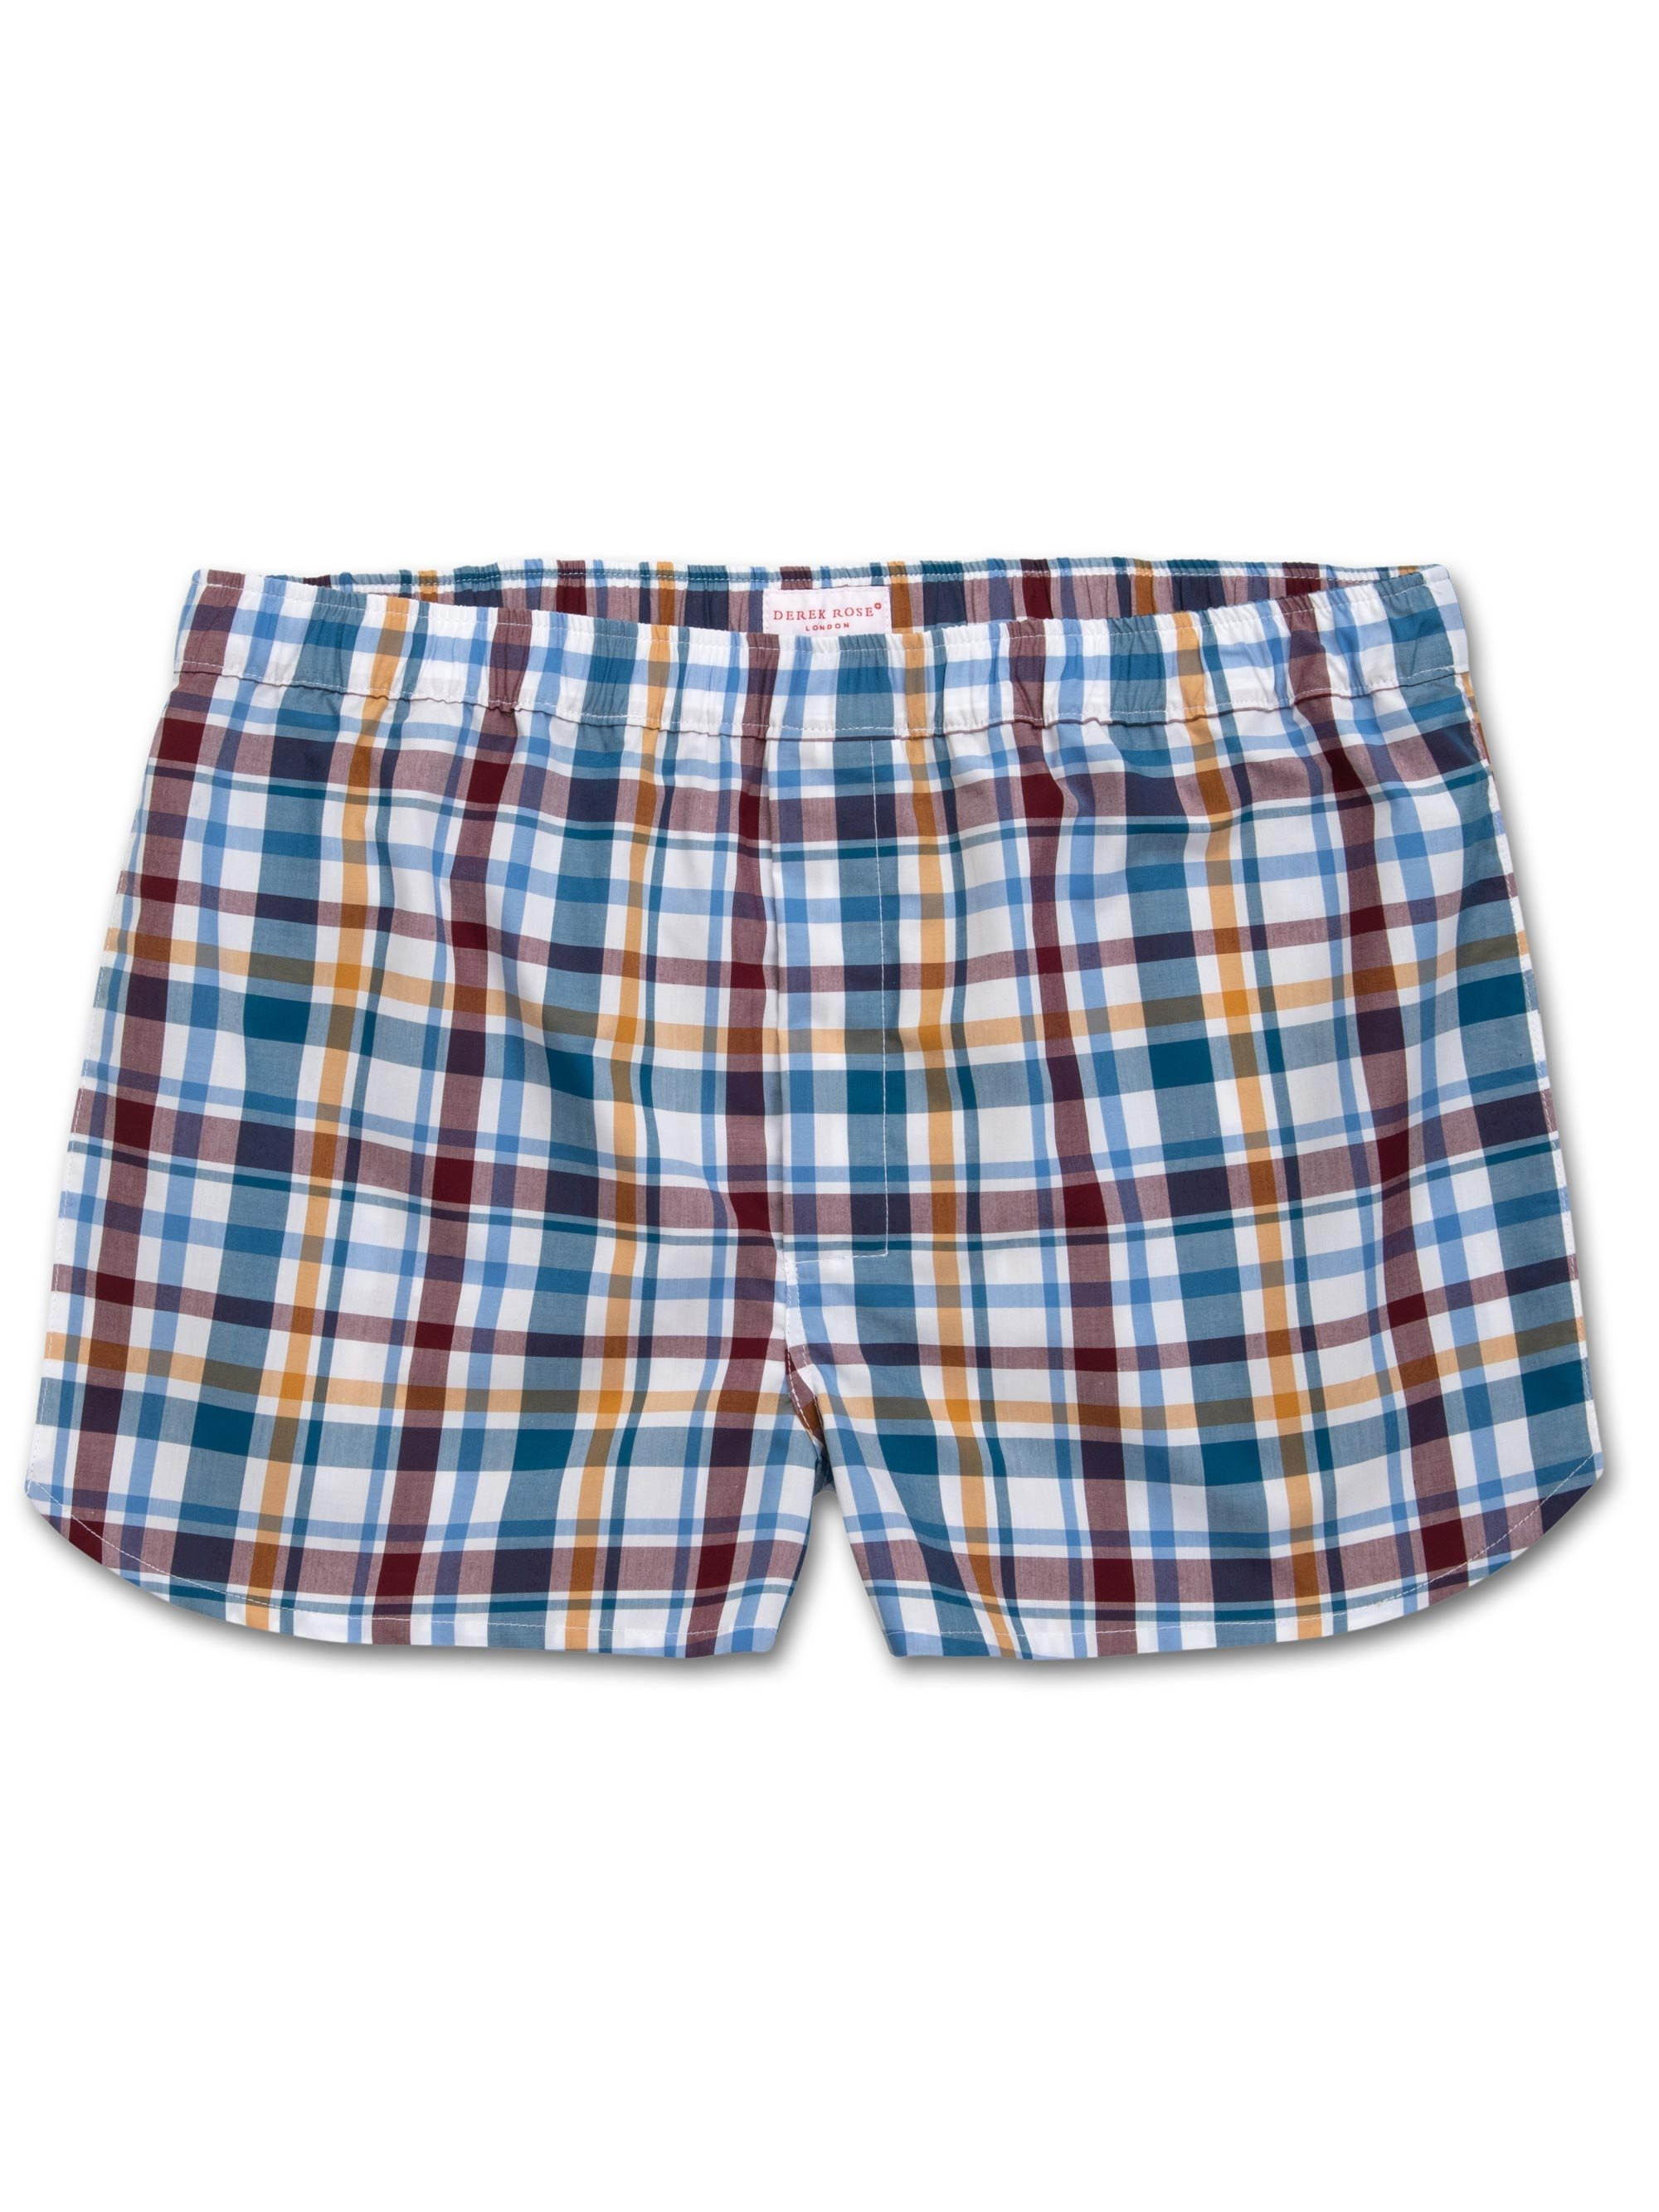 Men's Modern Fit Boxer Shorts Barker 25 Cotton Check Multi